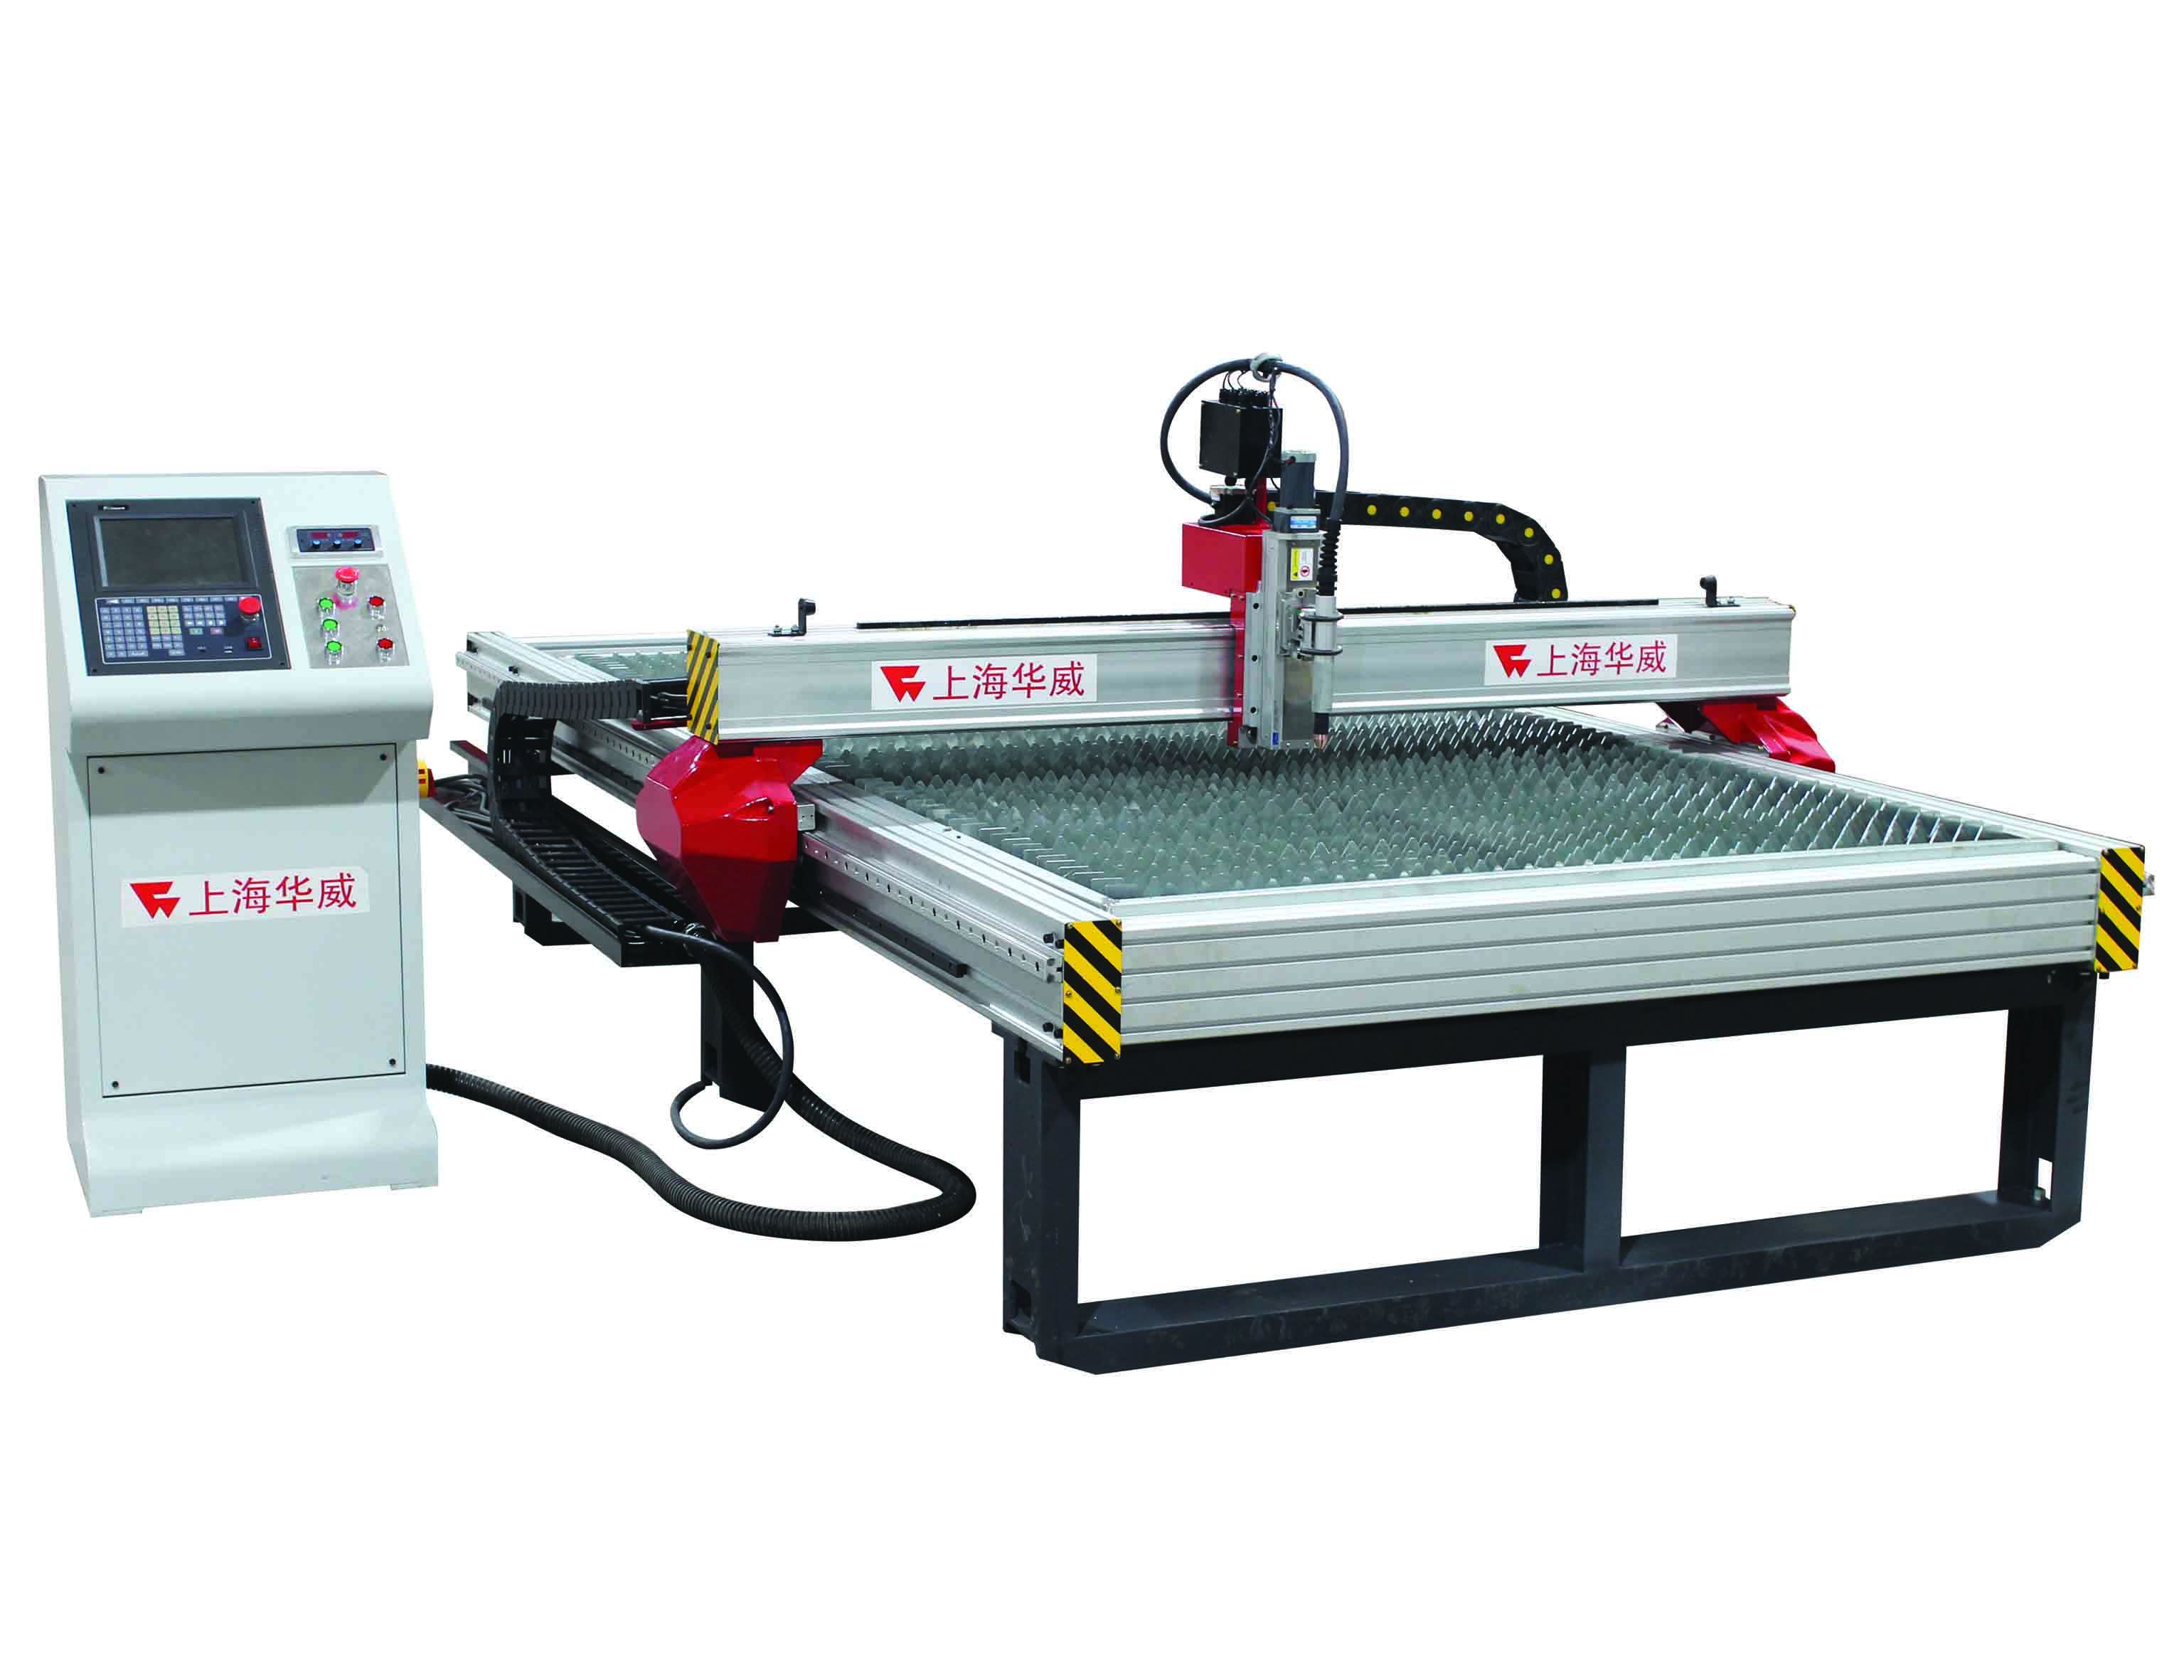 TNC Economical table model CNC plasma cutting machine